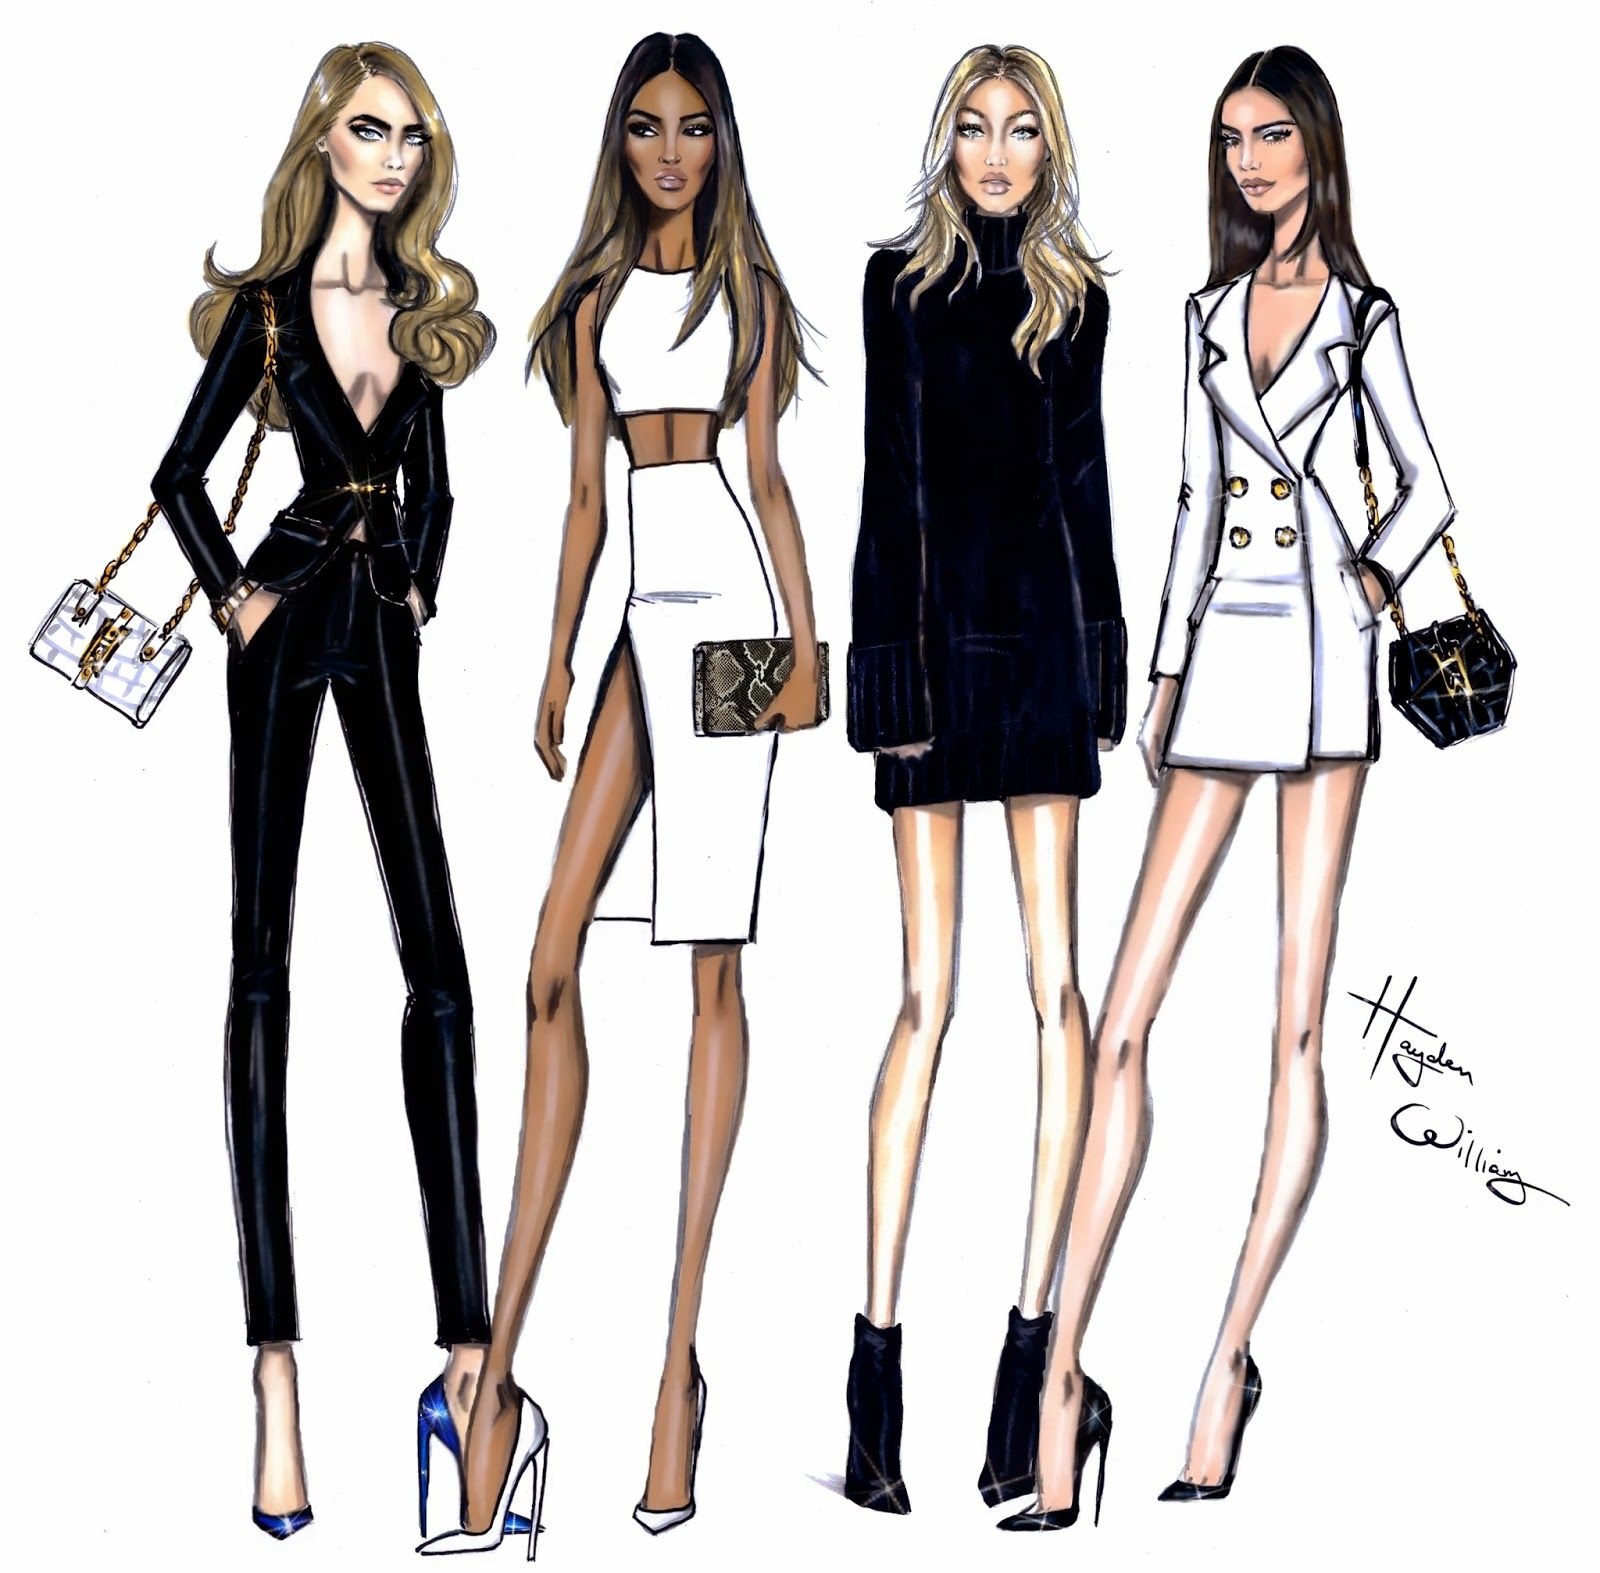 Discussion on this topic: Cara The Fashion Designer, cara-the-fashion-designer/